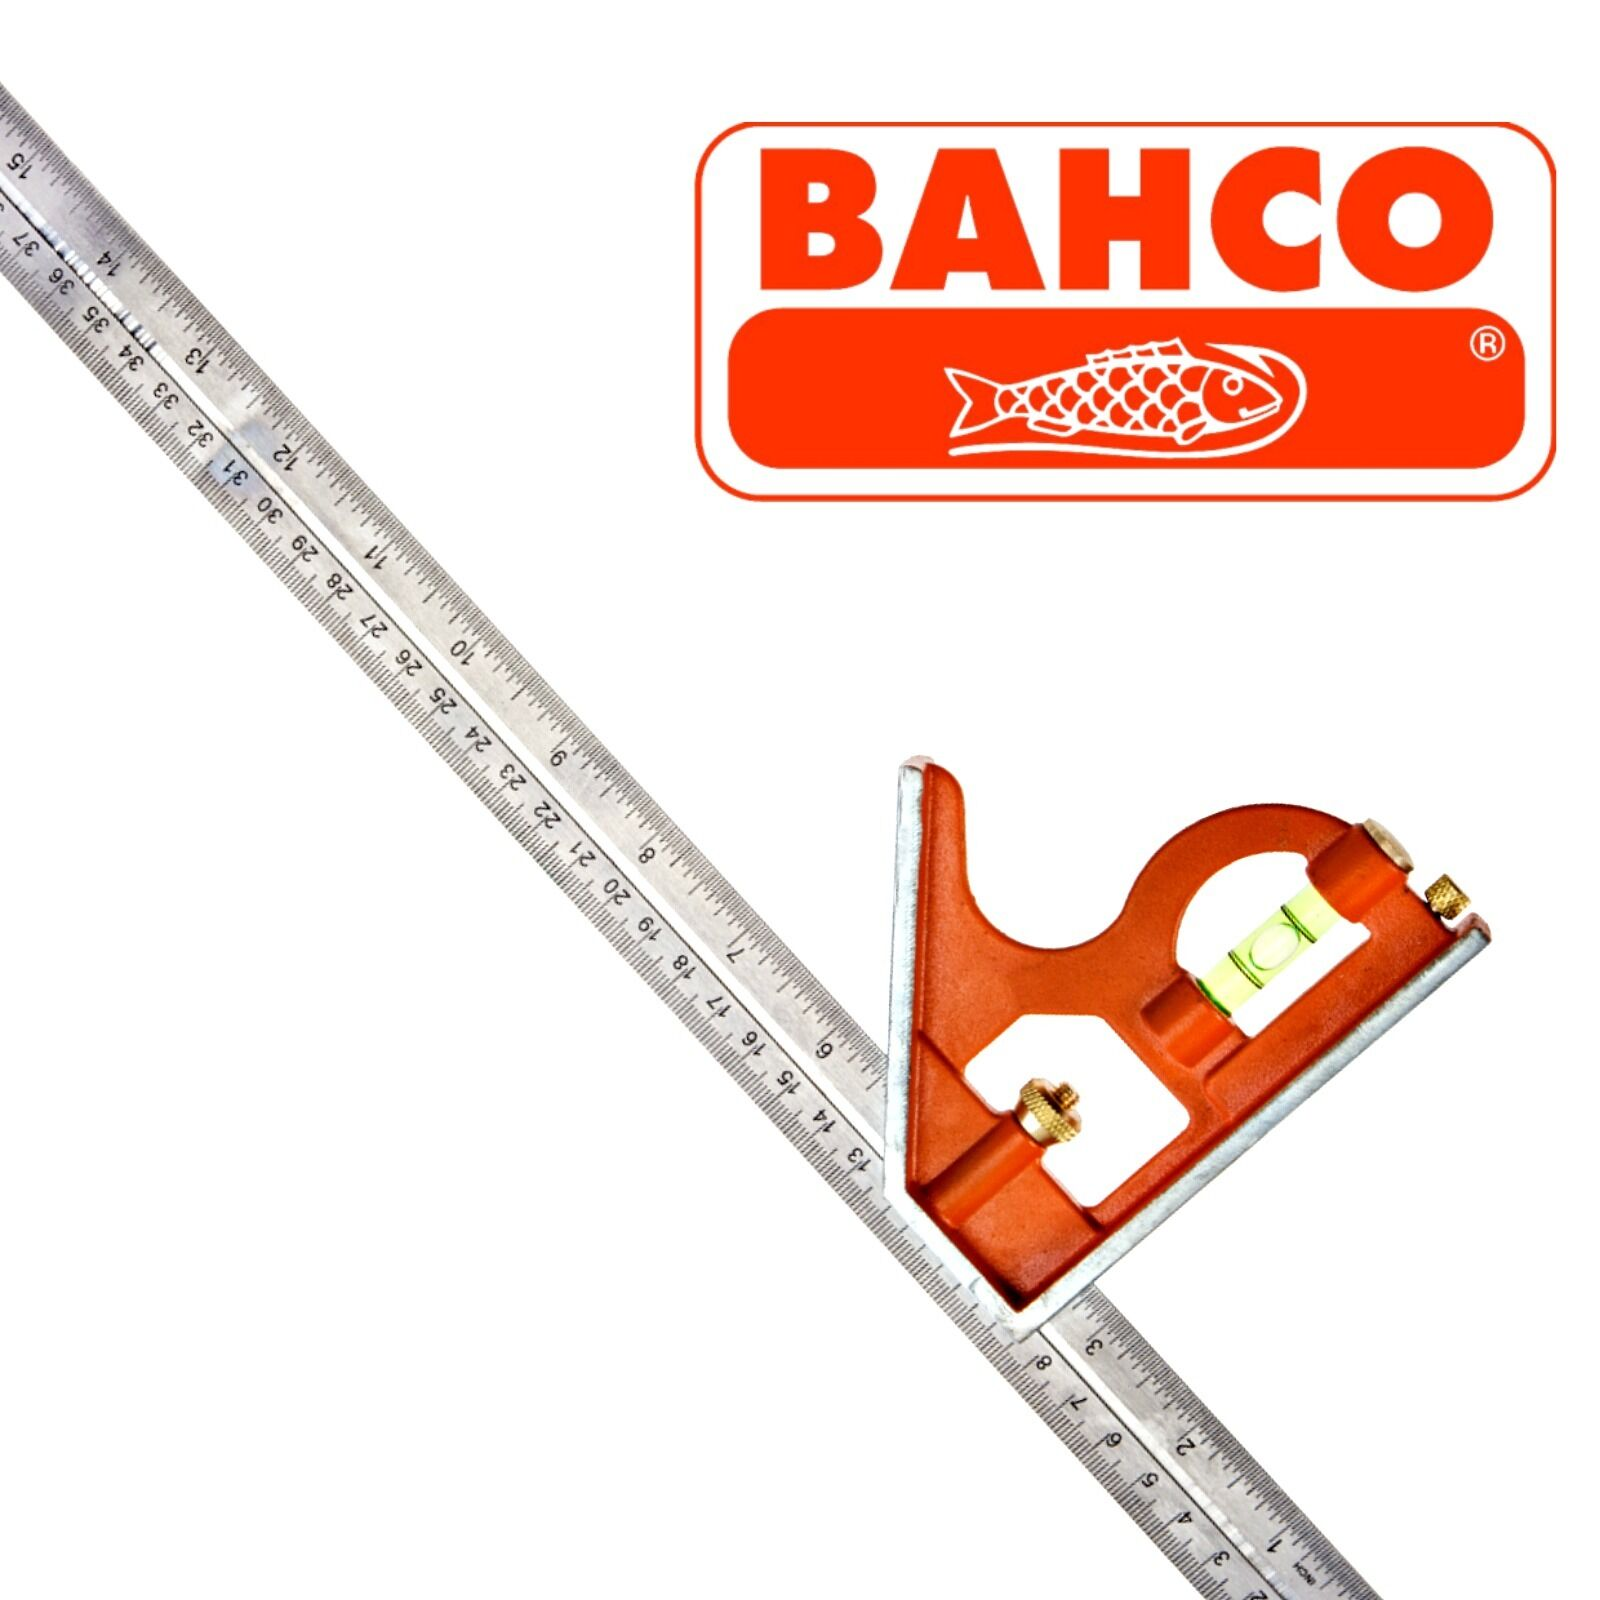 Bahco CS400 Combination Set Square 400mm 16 Inch Metal Body Steel Rule Adjusts